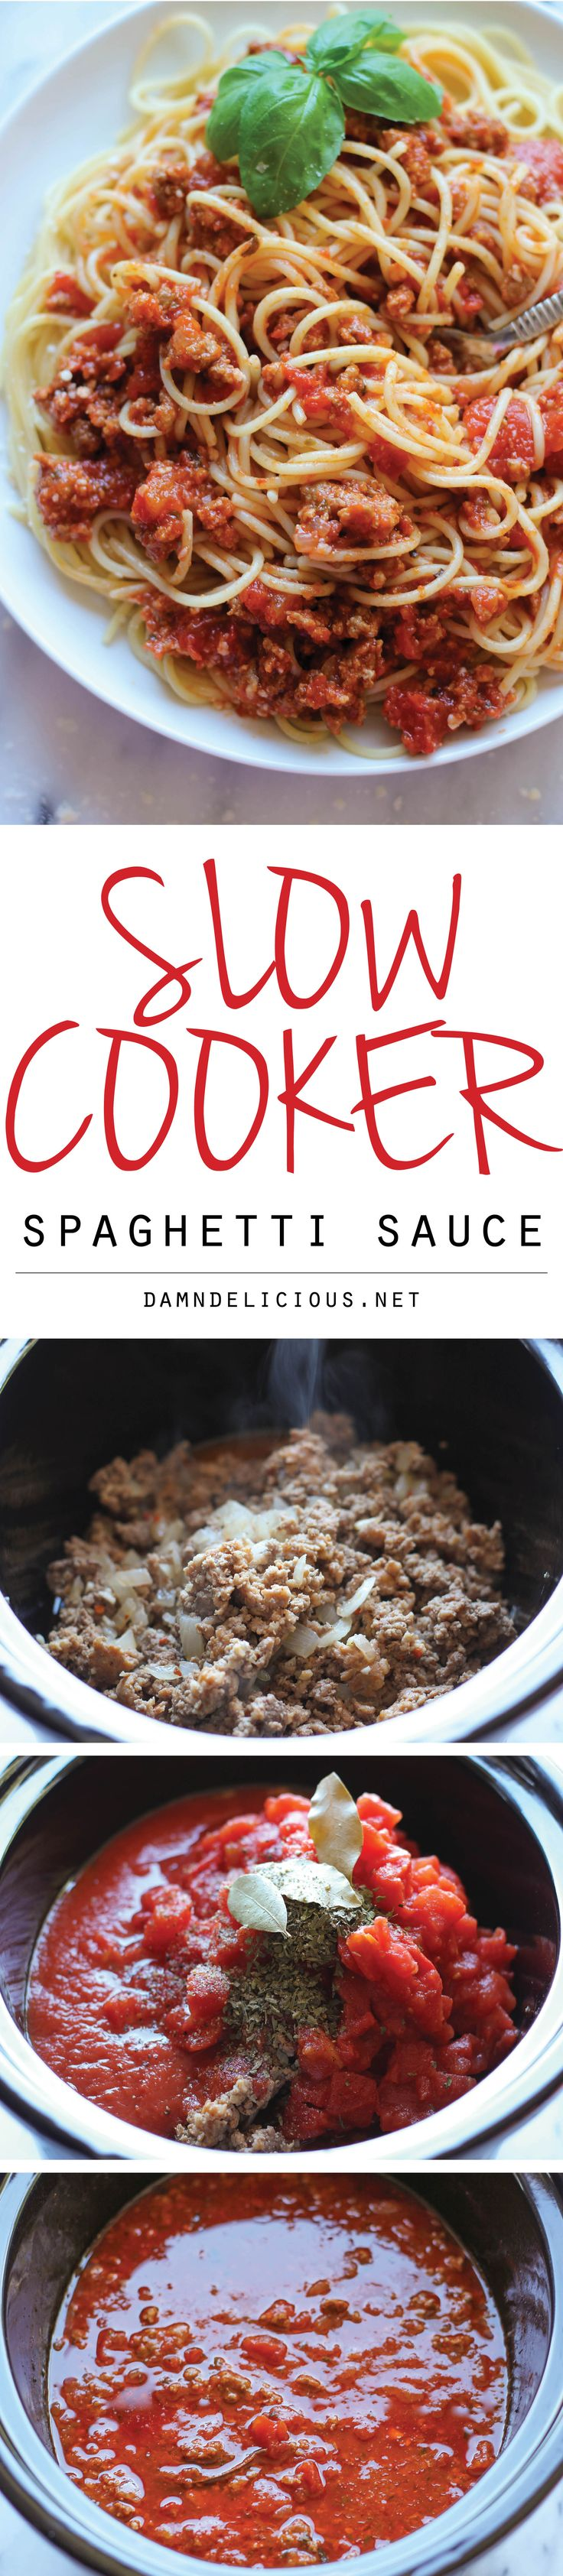 Slow Cooker Spaghetti Sauce - A rich and meaty spaghetti sauce easily made in the crockpot with just 10 min prep!